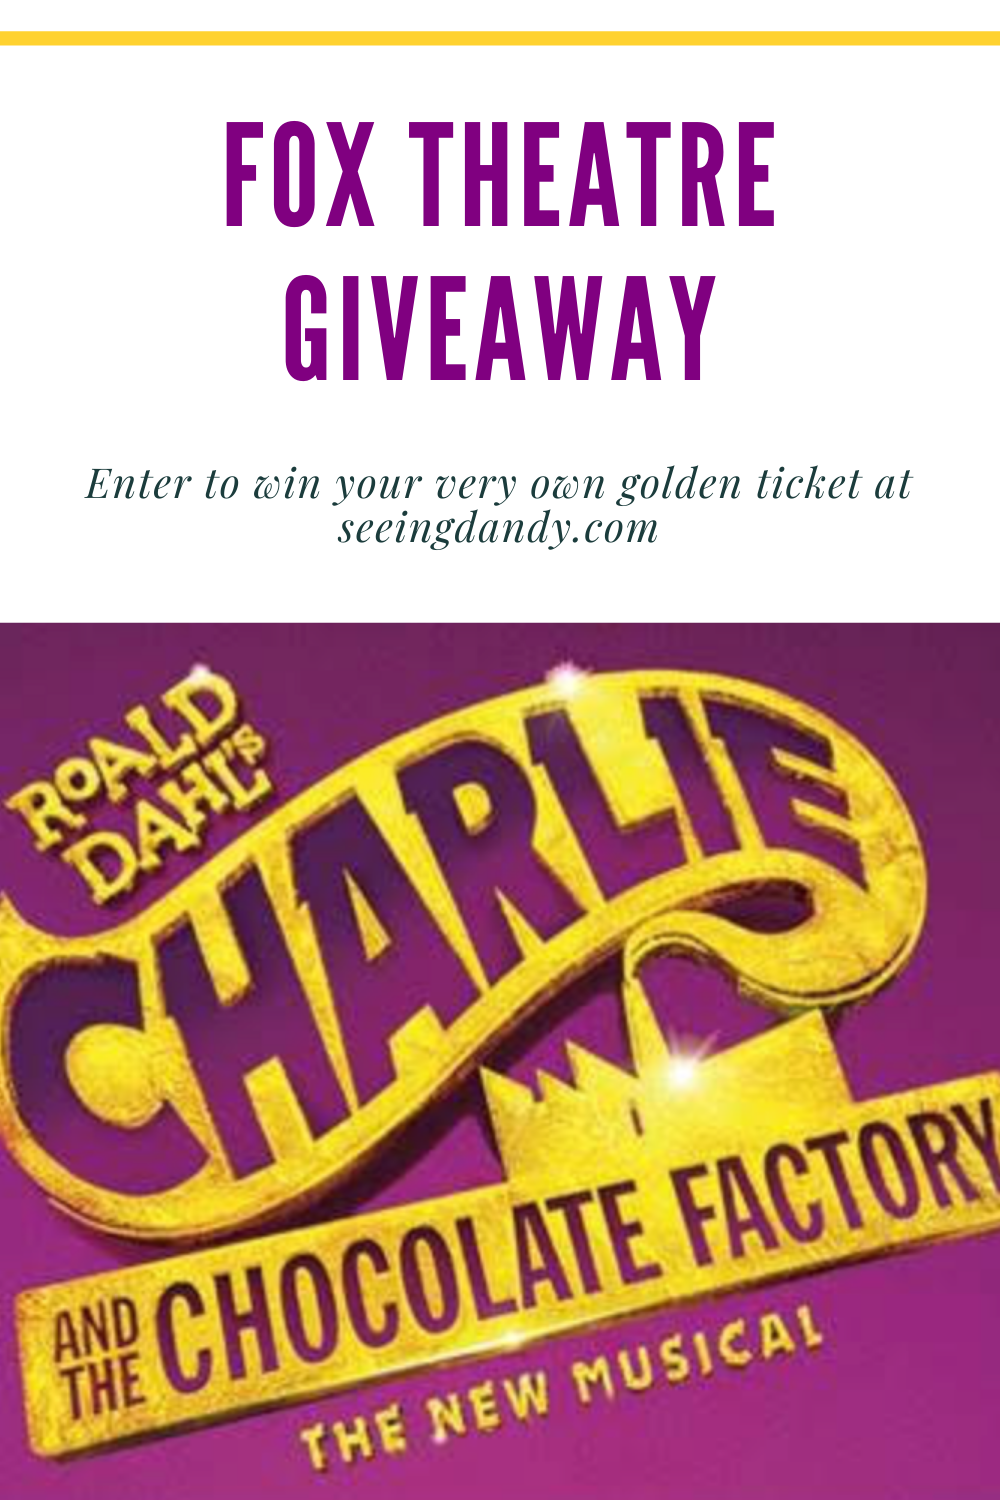 Fox Theatre Giveaway for Charlie and the Chocolate Factory in St. Louis.